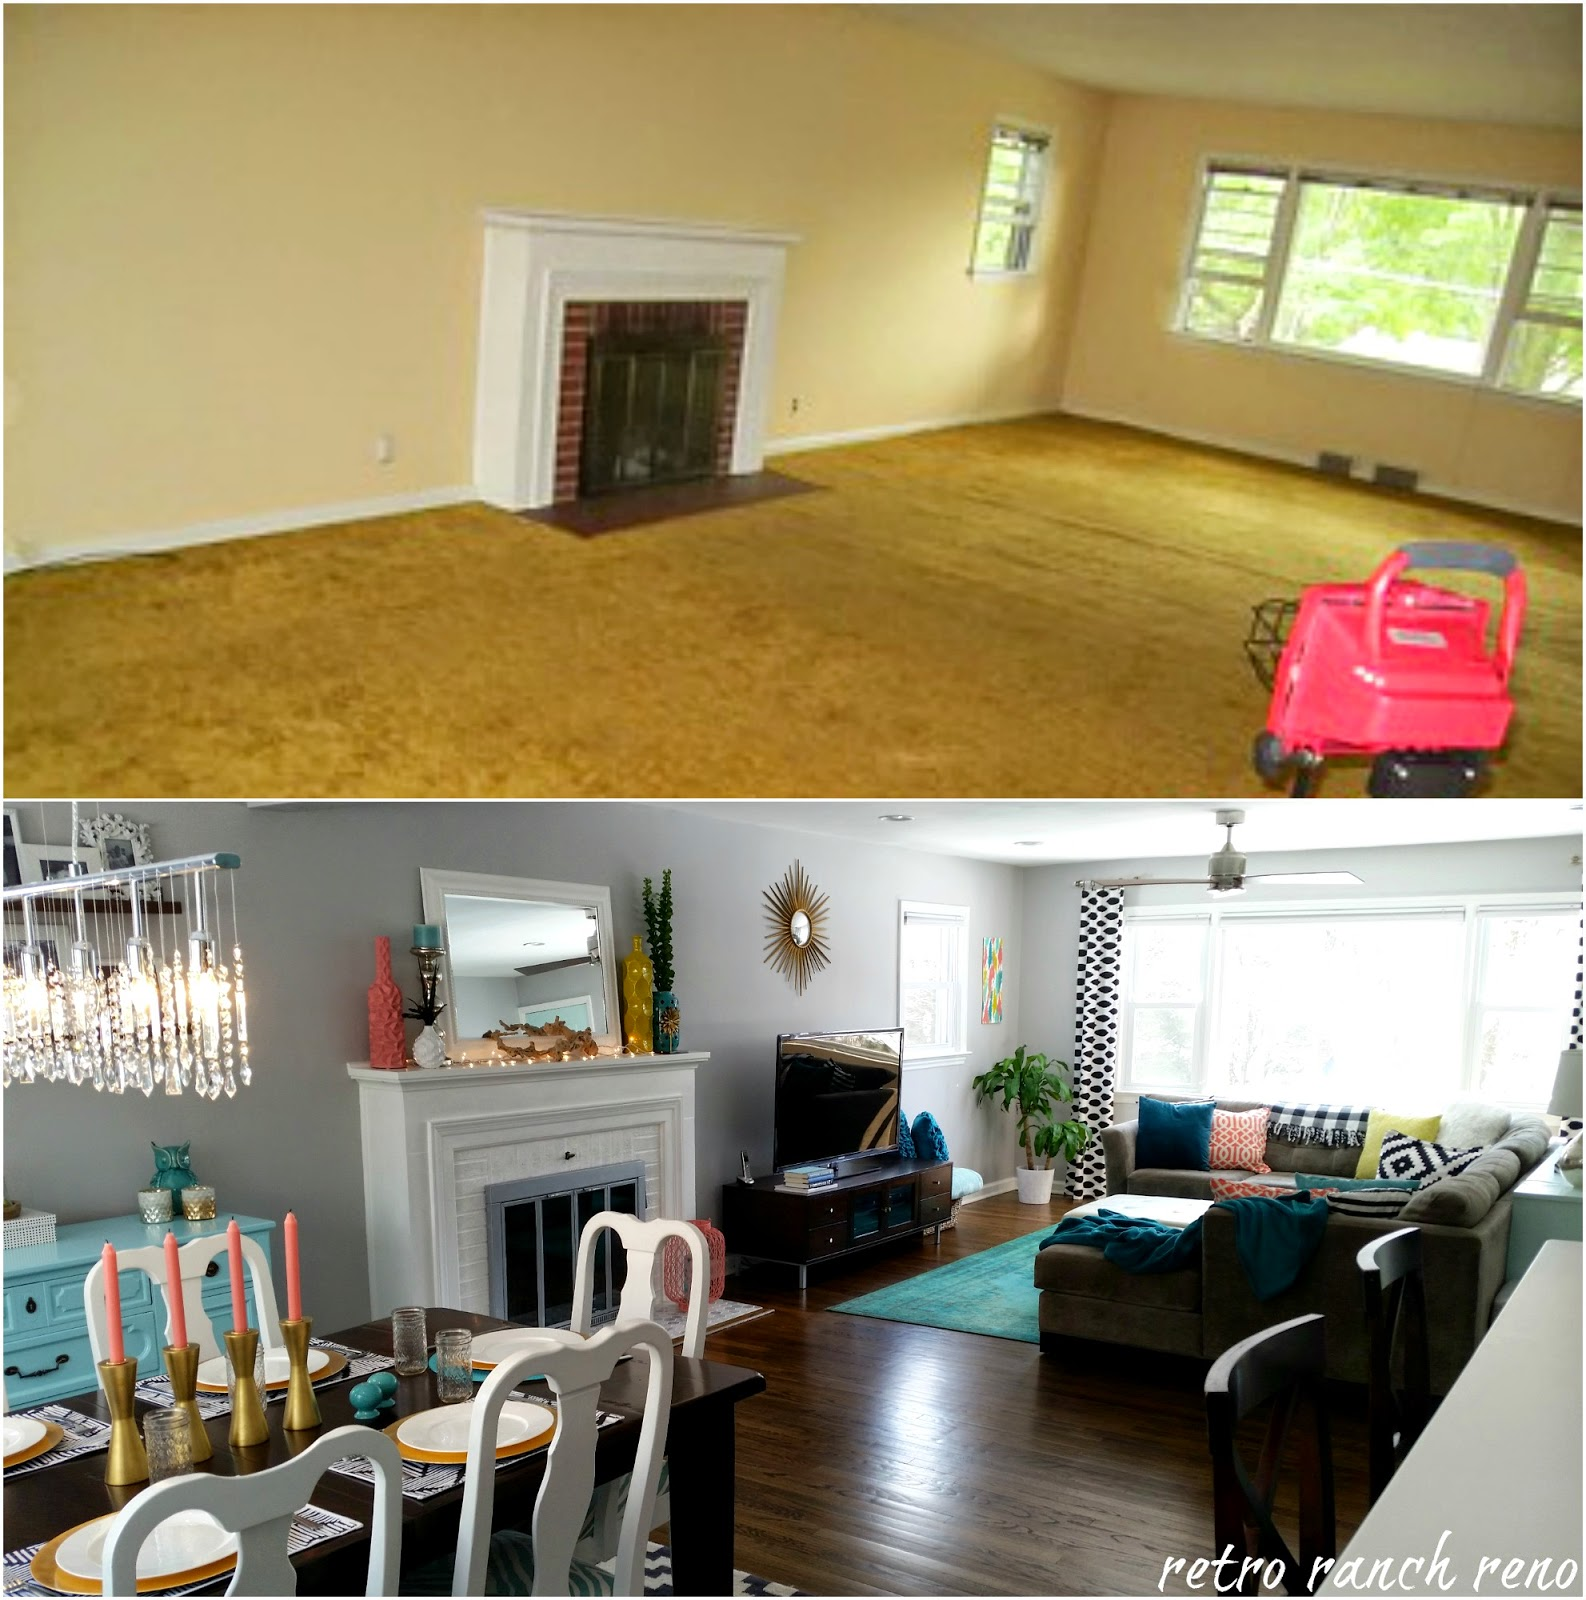 Haberae Small Houses In Reno: Retro Ranch Reno: Our Rancher: Before & After